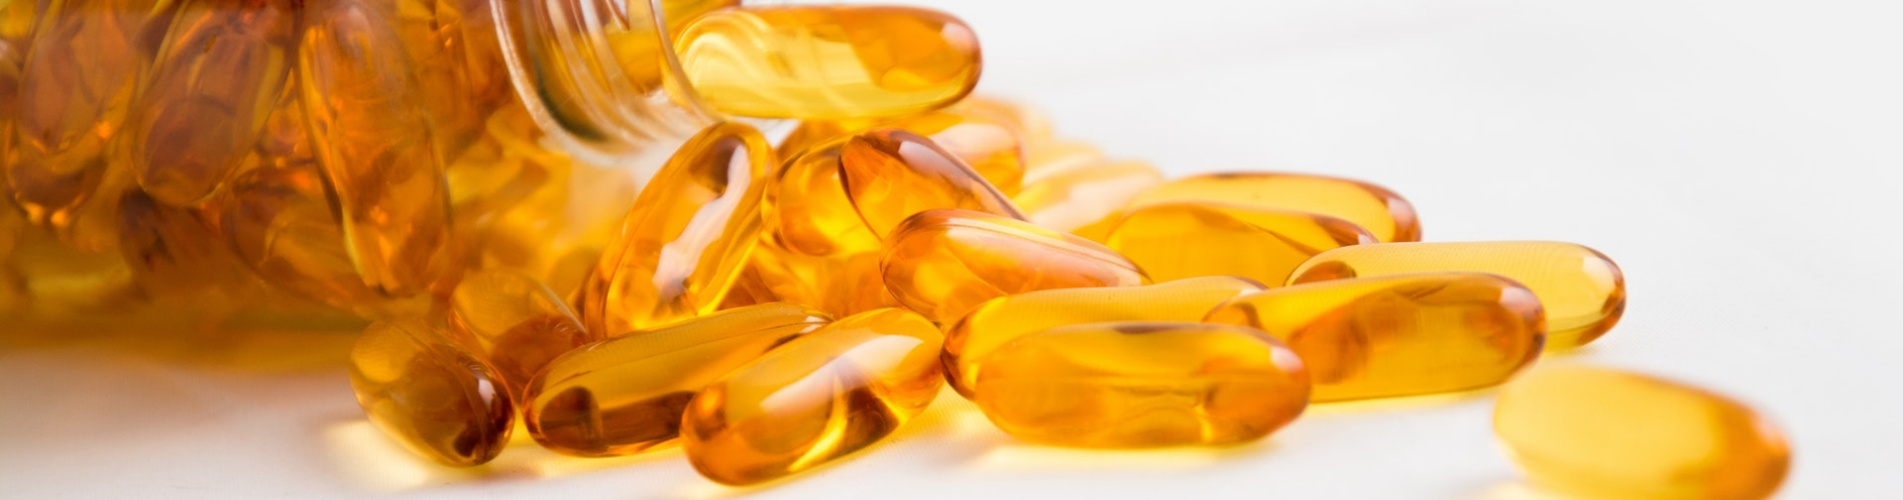 Why Fish Oil May Not Be As Beneficial As We Thought